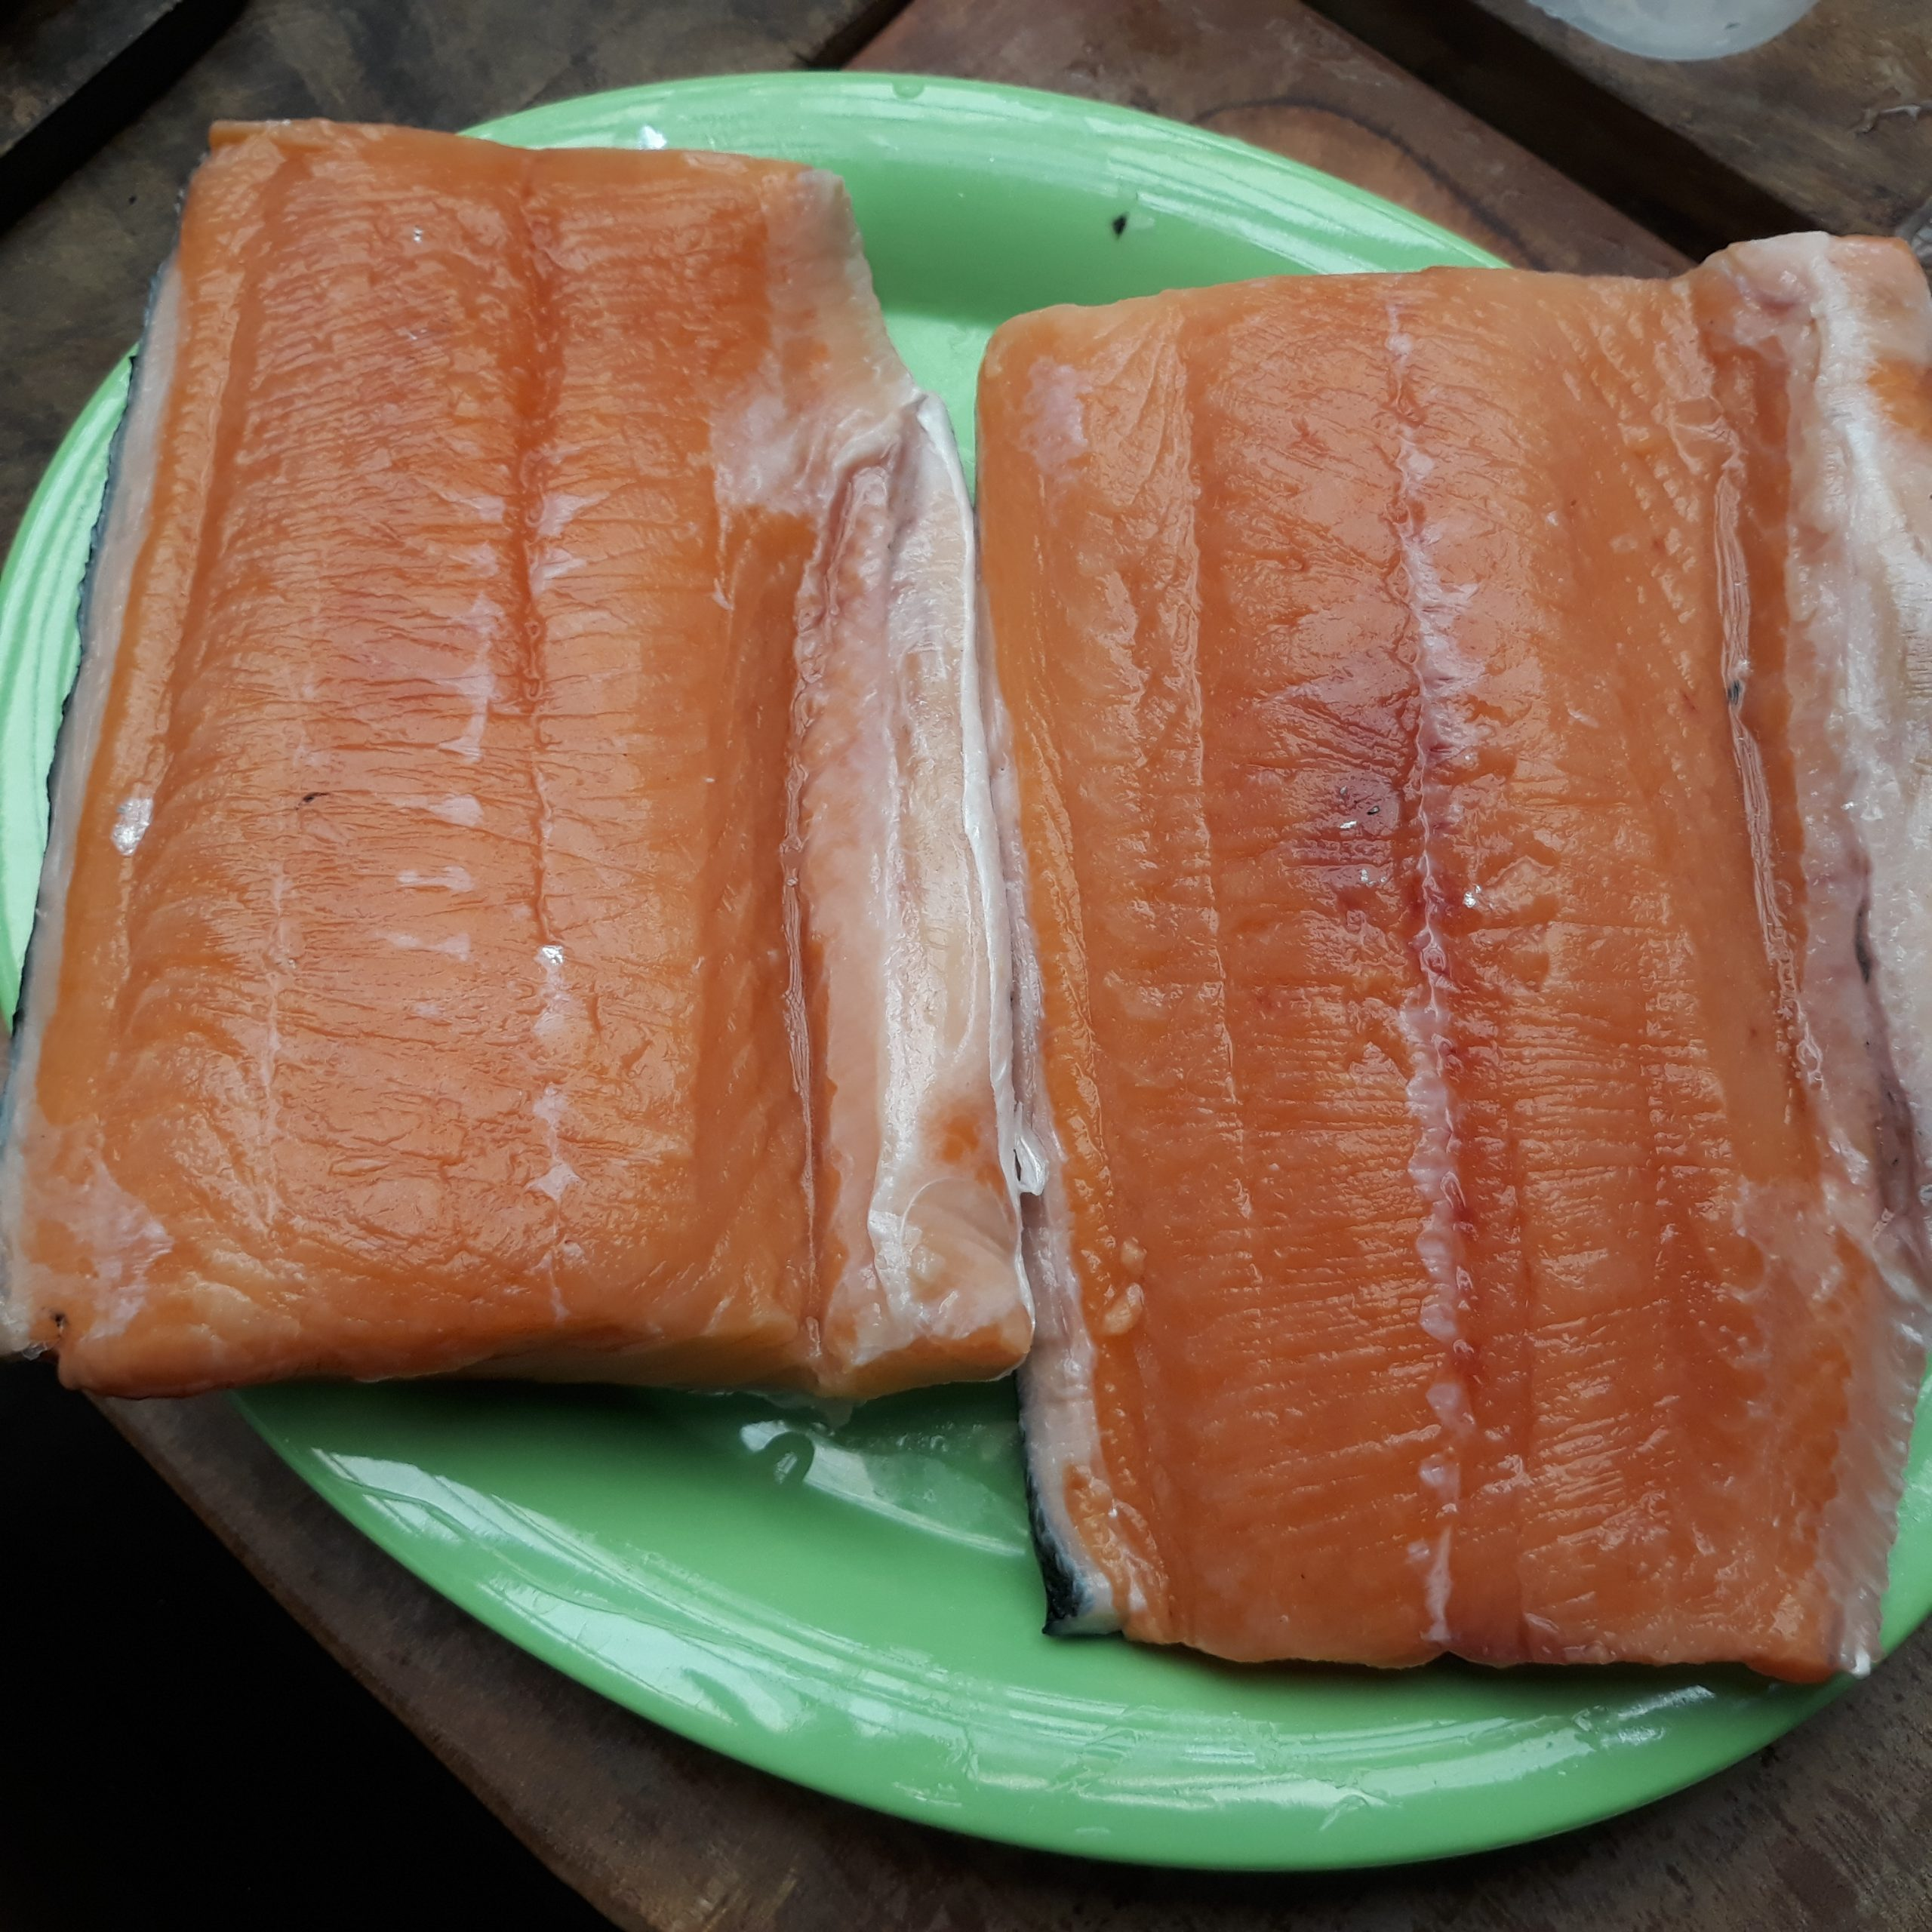 Two pieces of salmon fillet on a green plate.